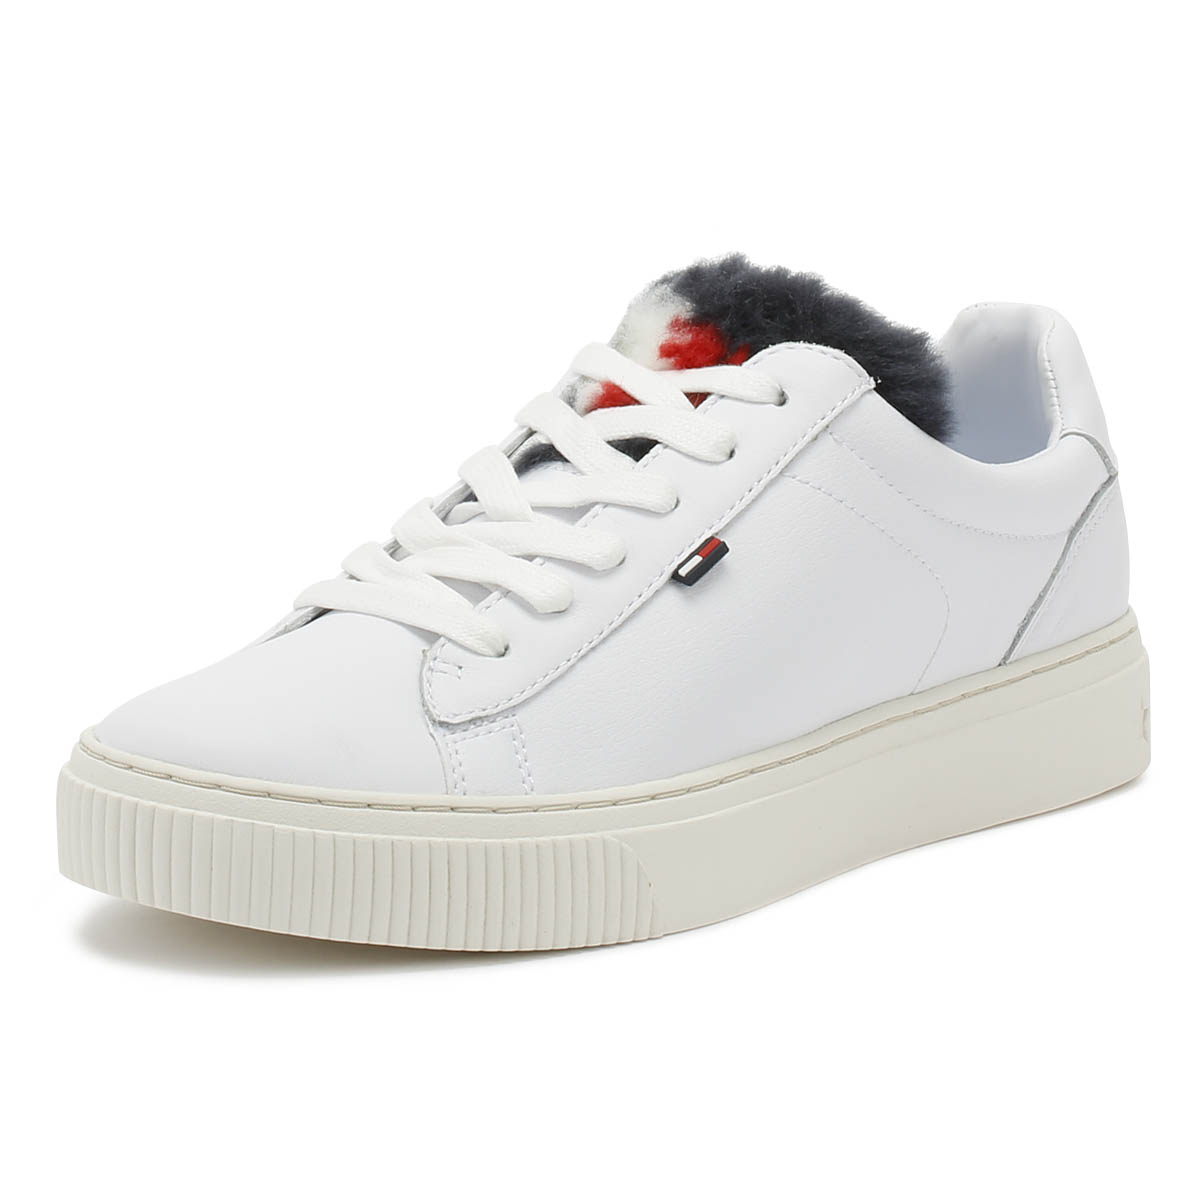 c6488a2c43d70 Tommy Hilfiger Womens Trainers White Funny Fur Star Sport Casual Shoes